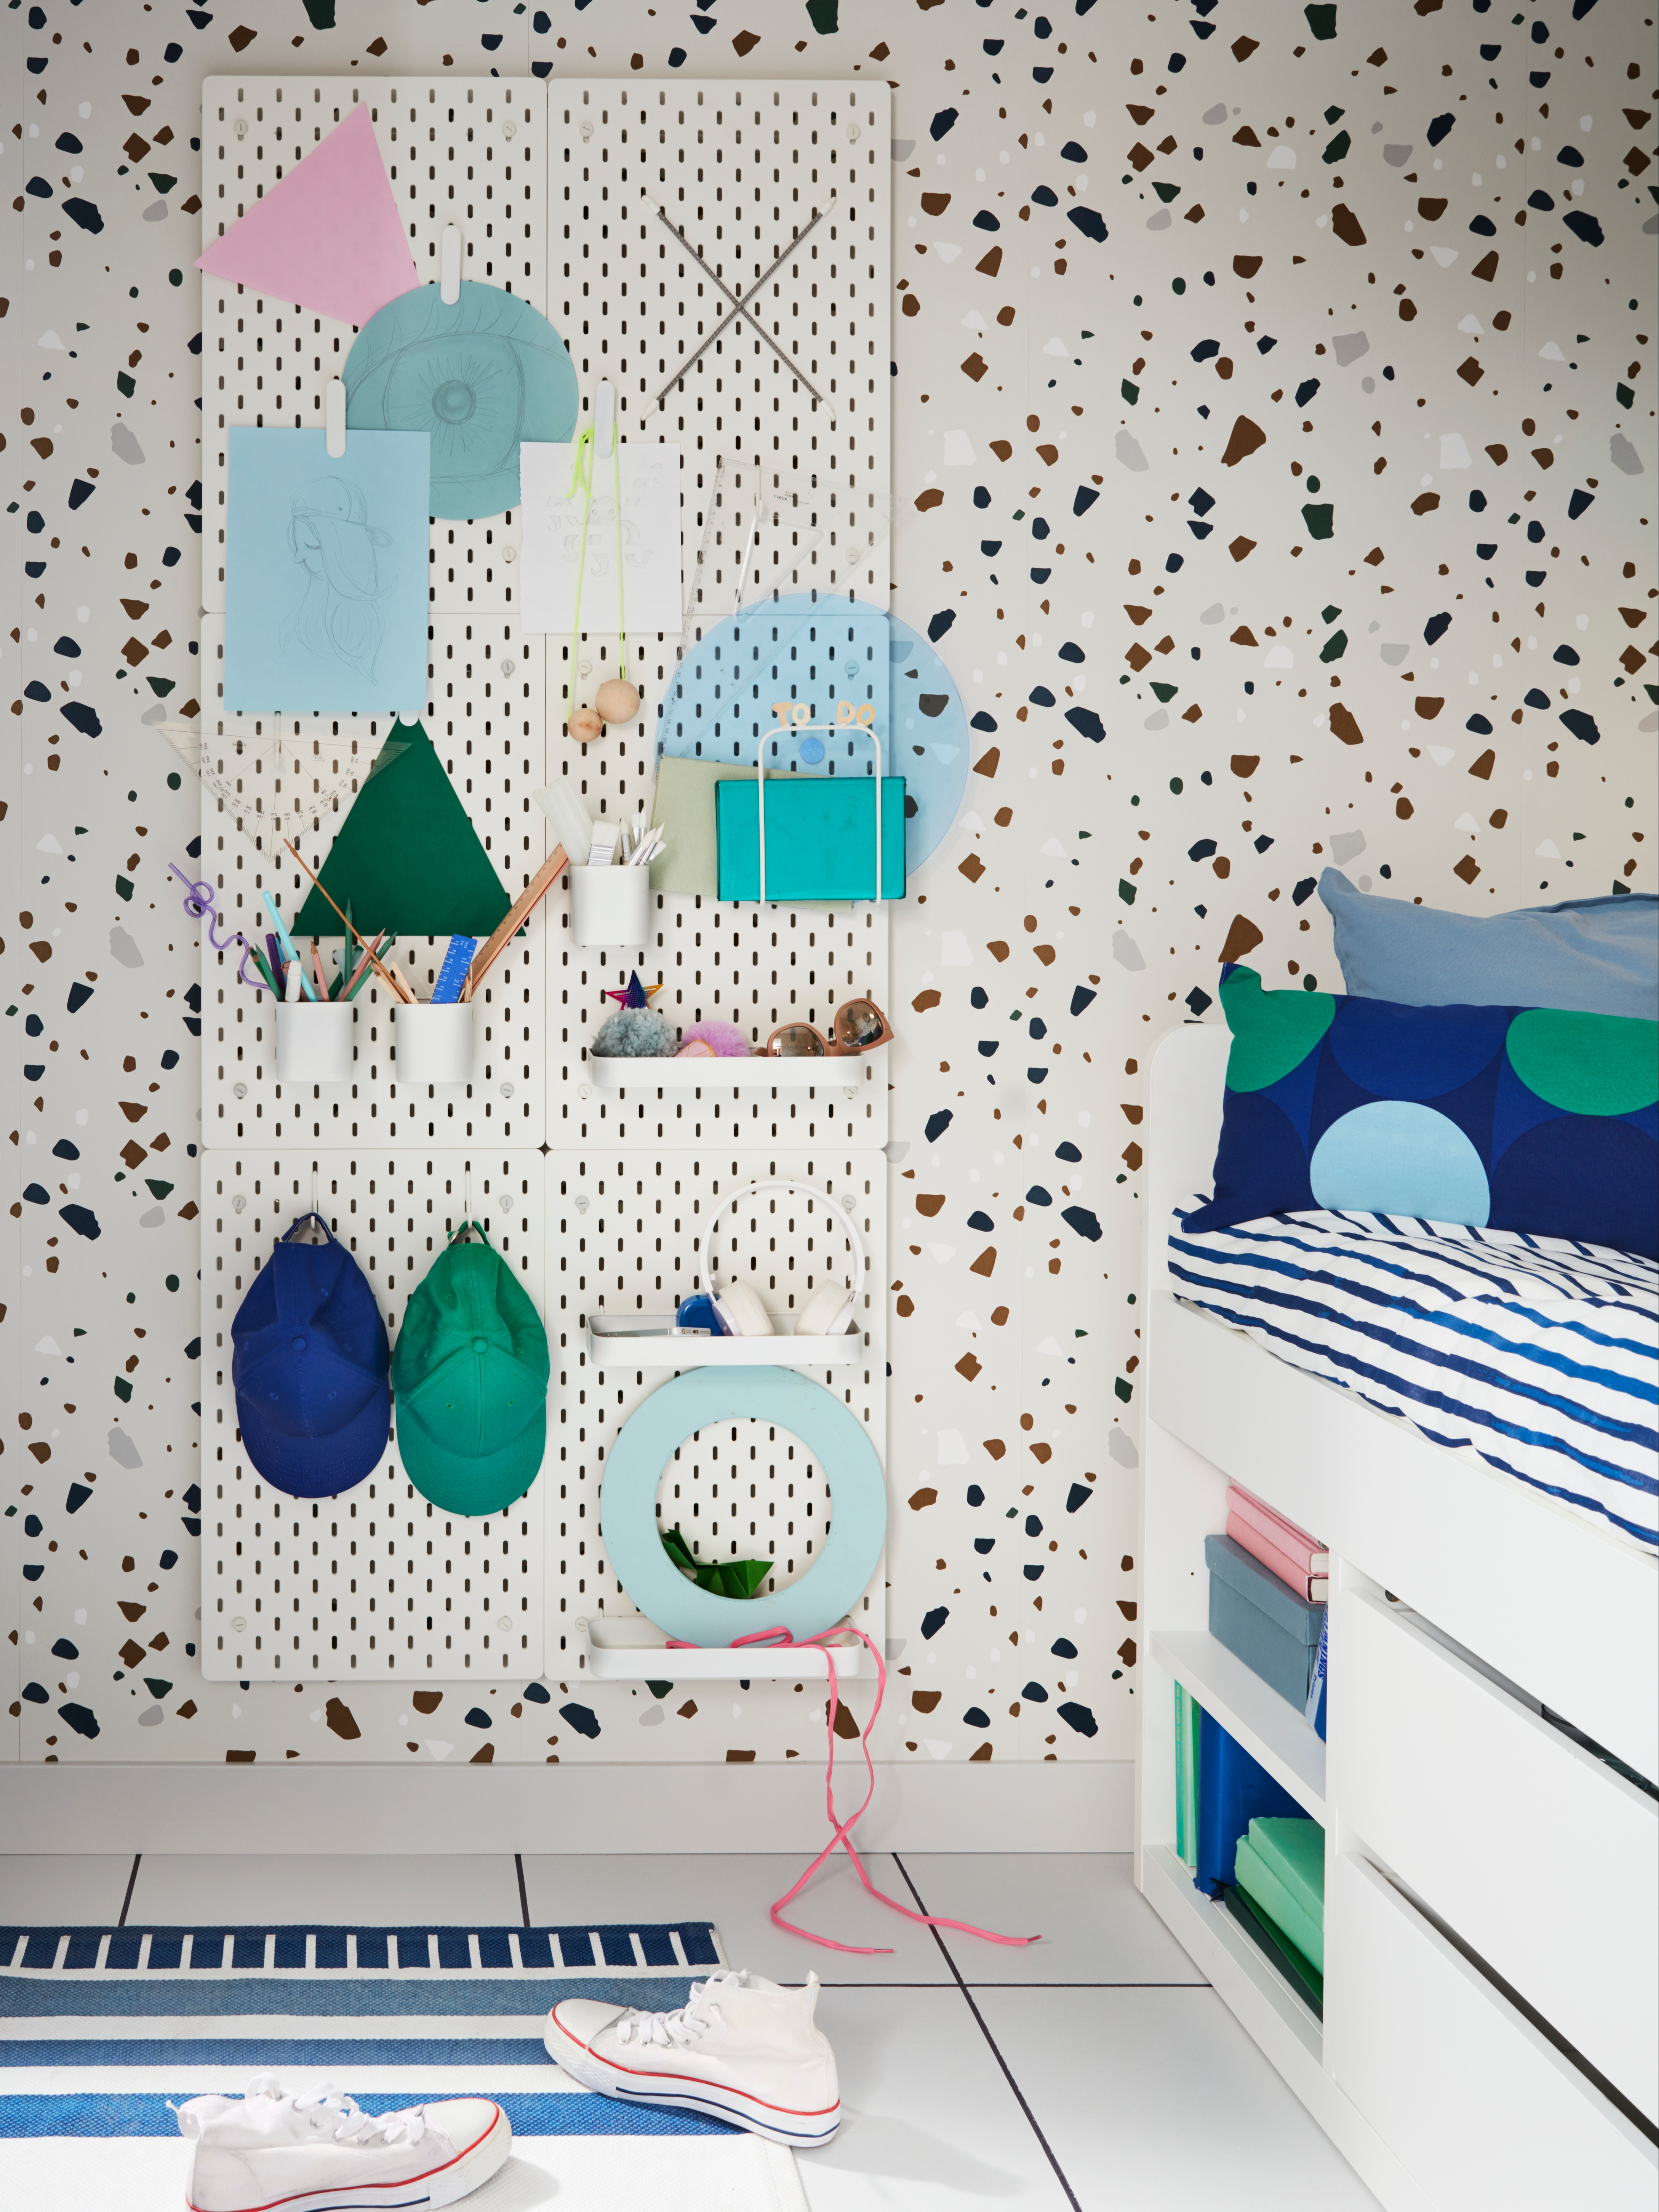 A wall with three rows of two SKÅDIS white pegboards, containers and shelves holding a tablet, headphones and more by a bed.